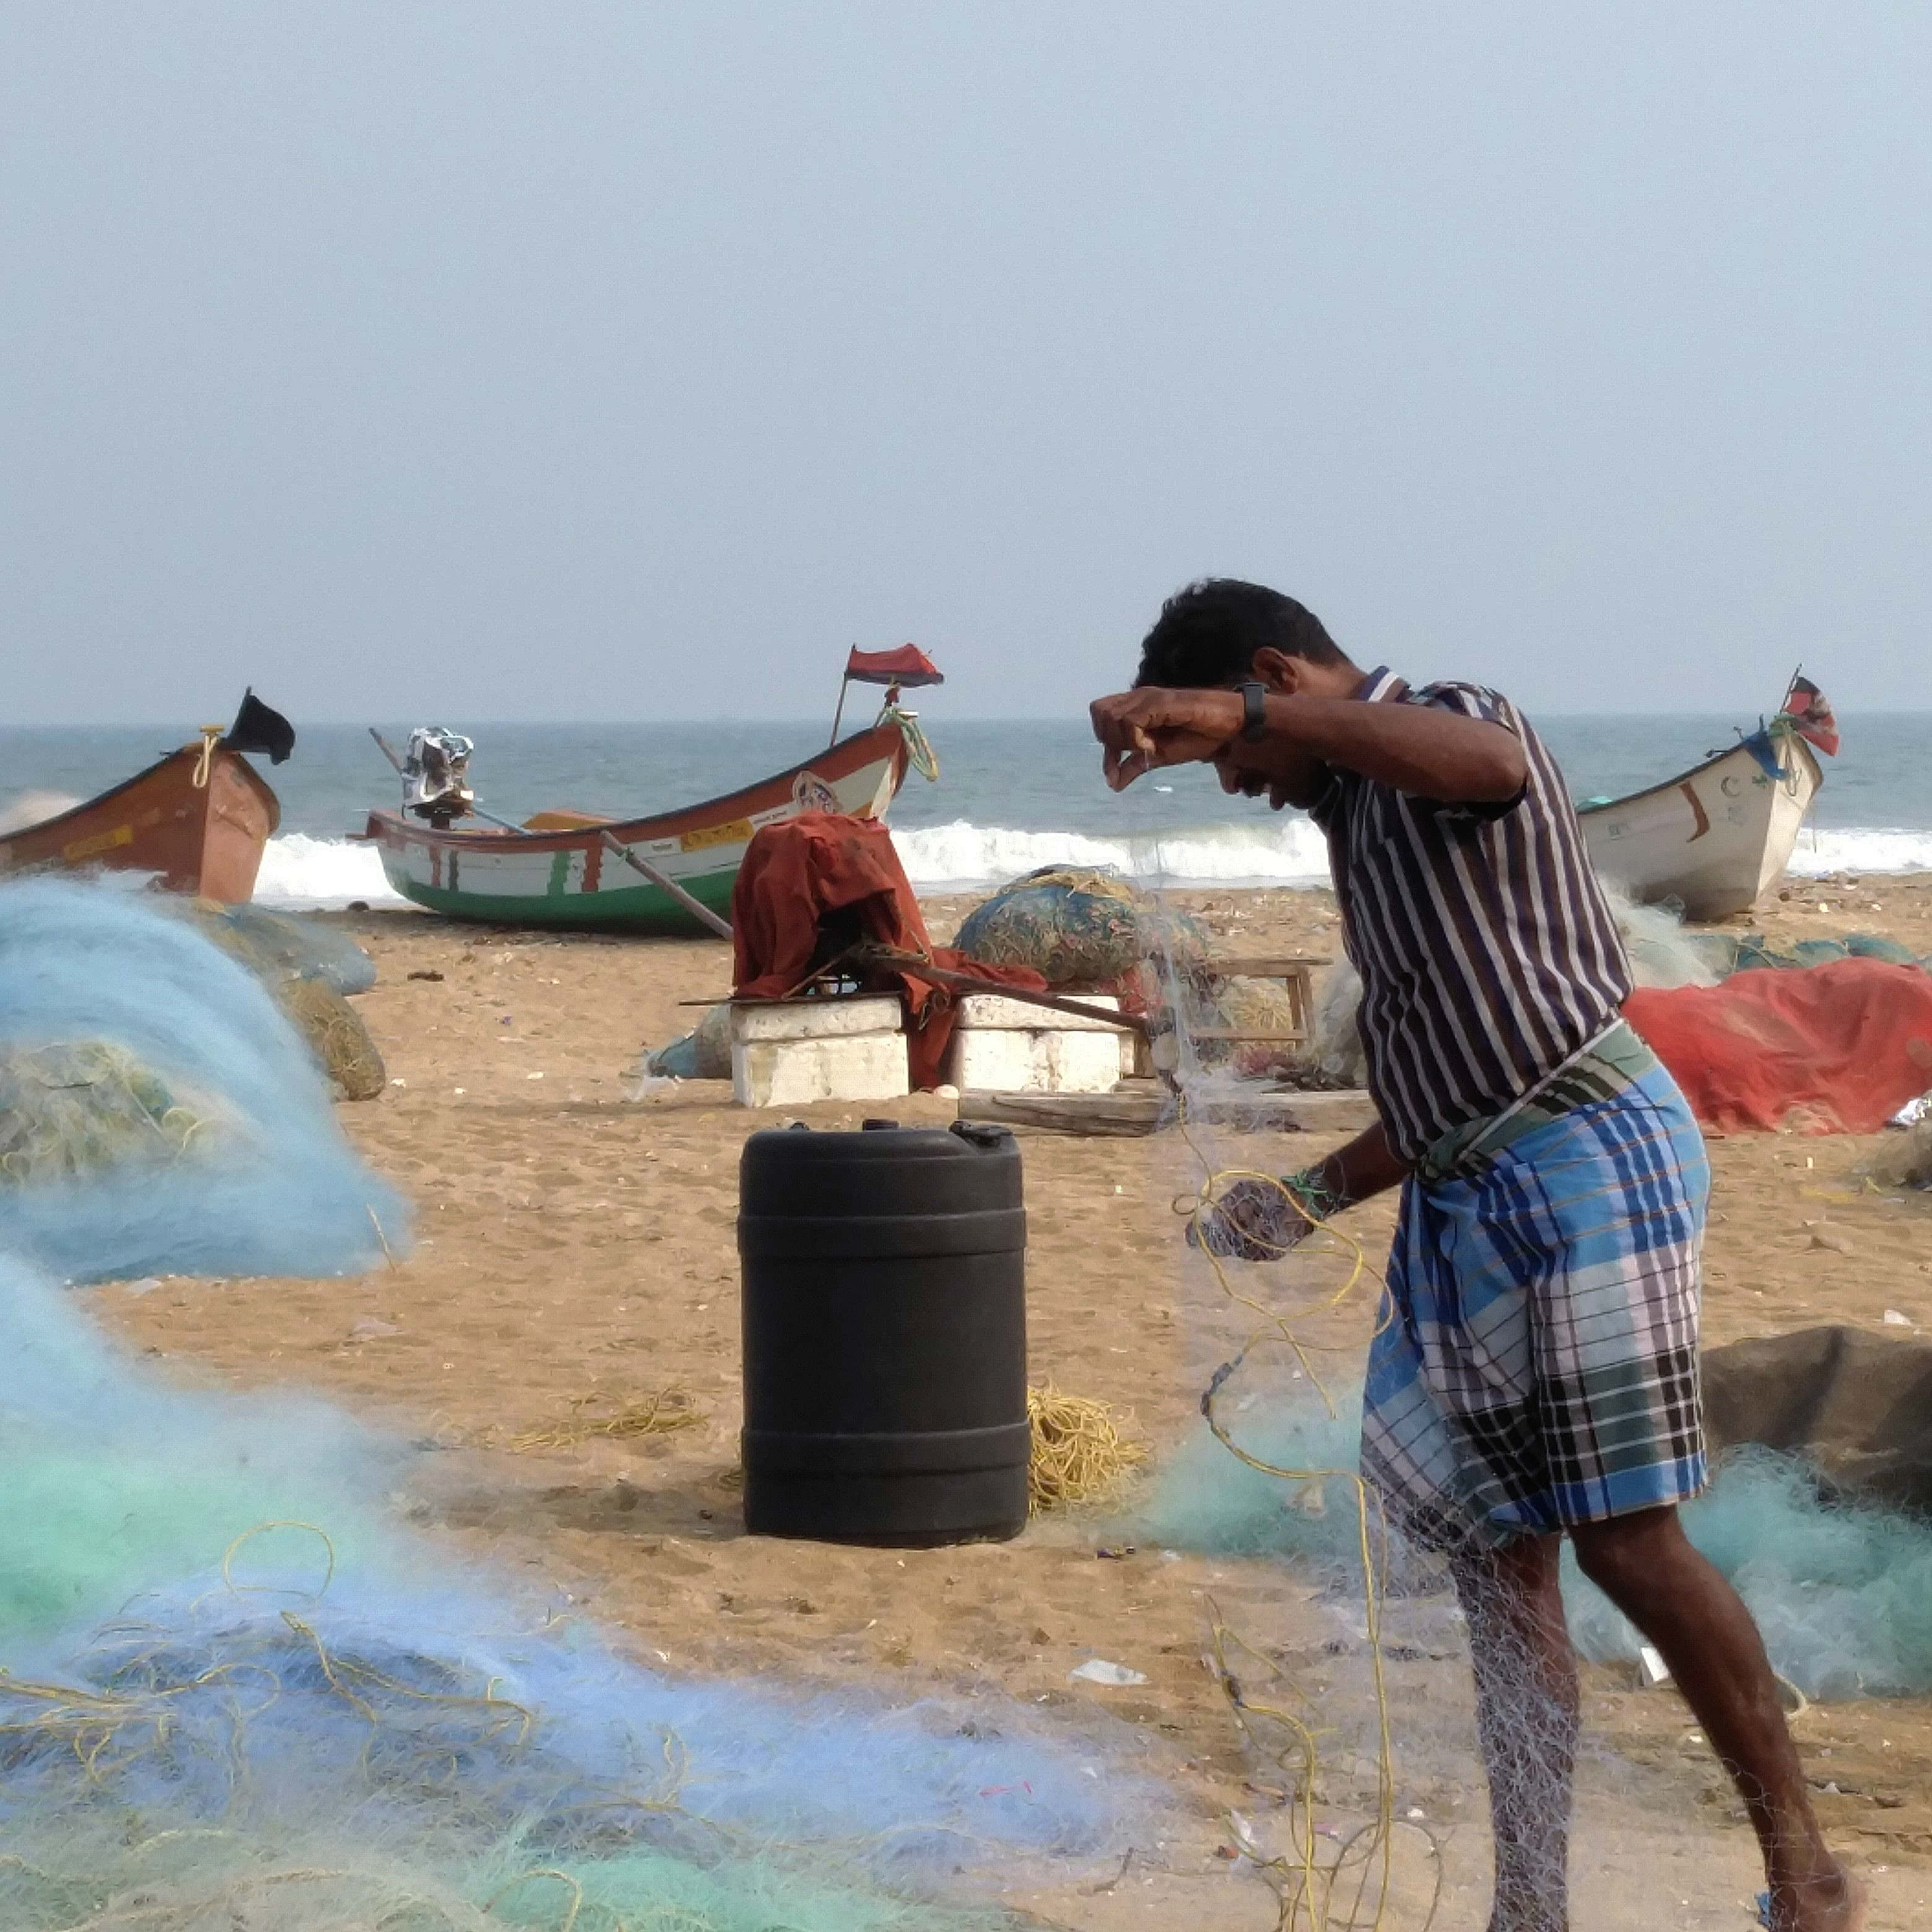 An artisanal fisherman folds his net on Marina beach in Chennai. (Photo credit: Vinita Govindarajan).